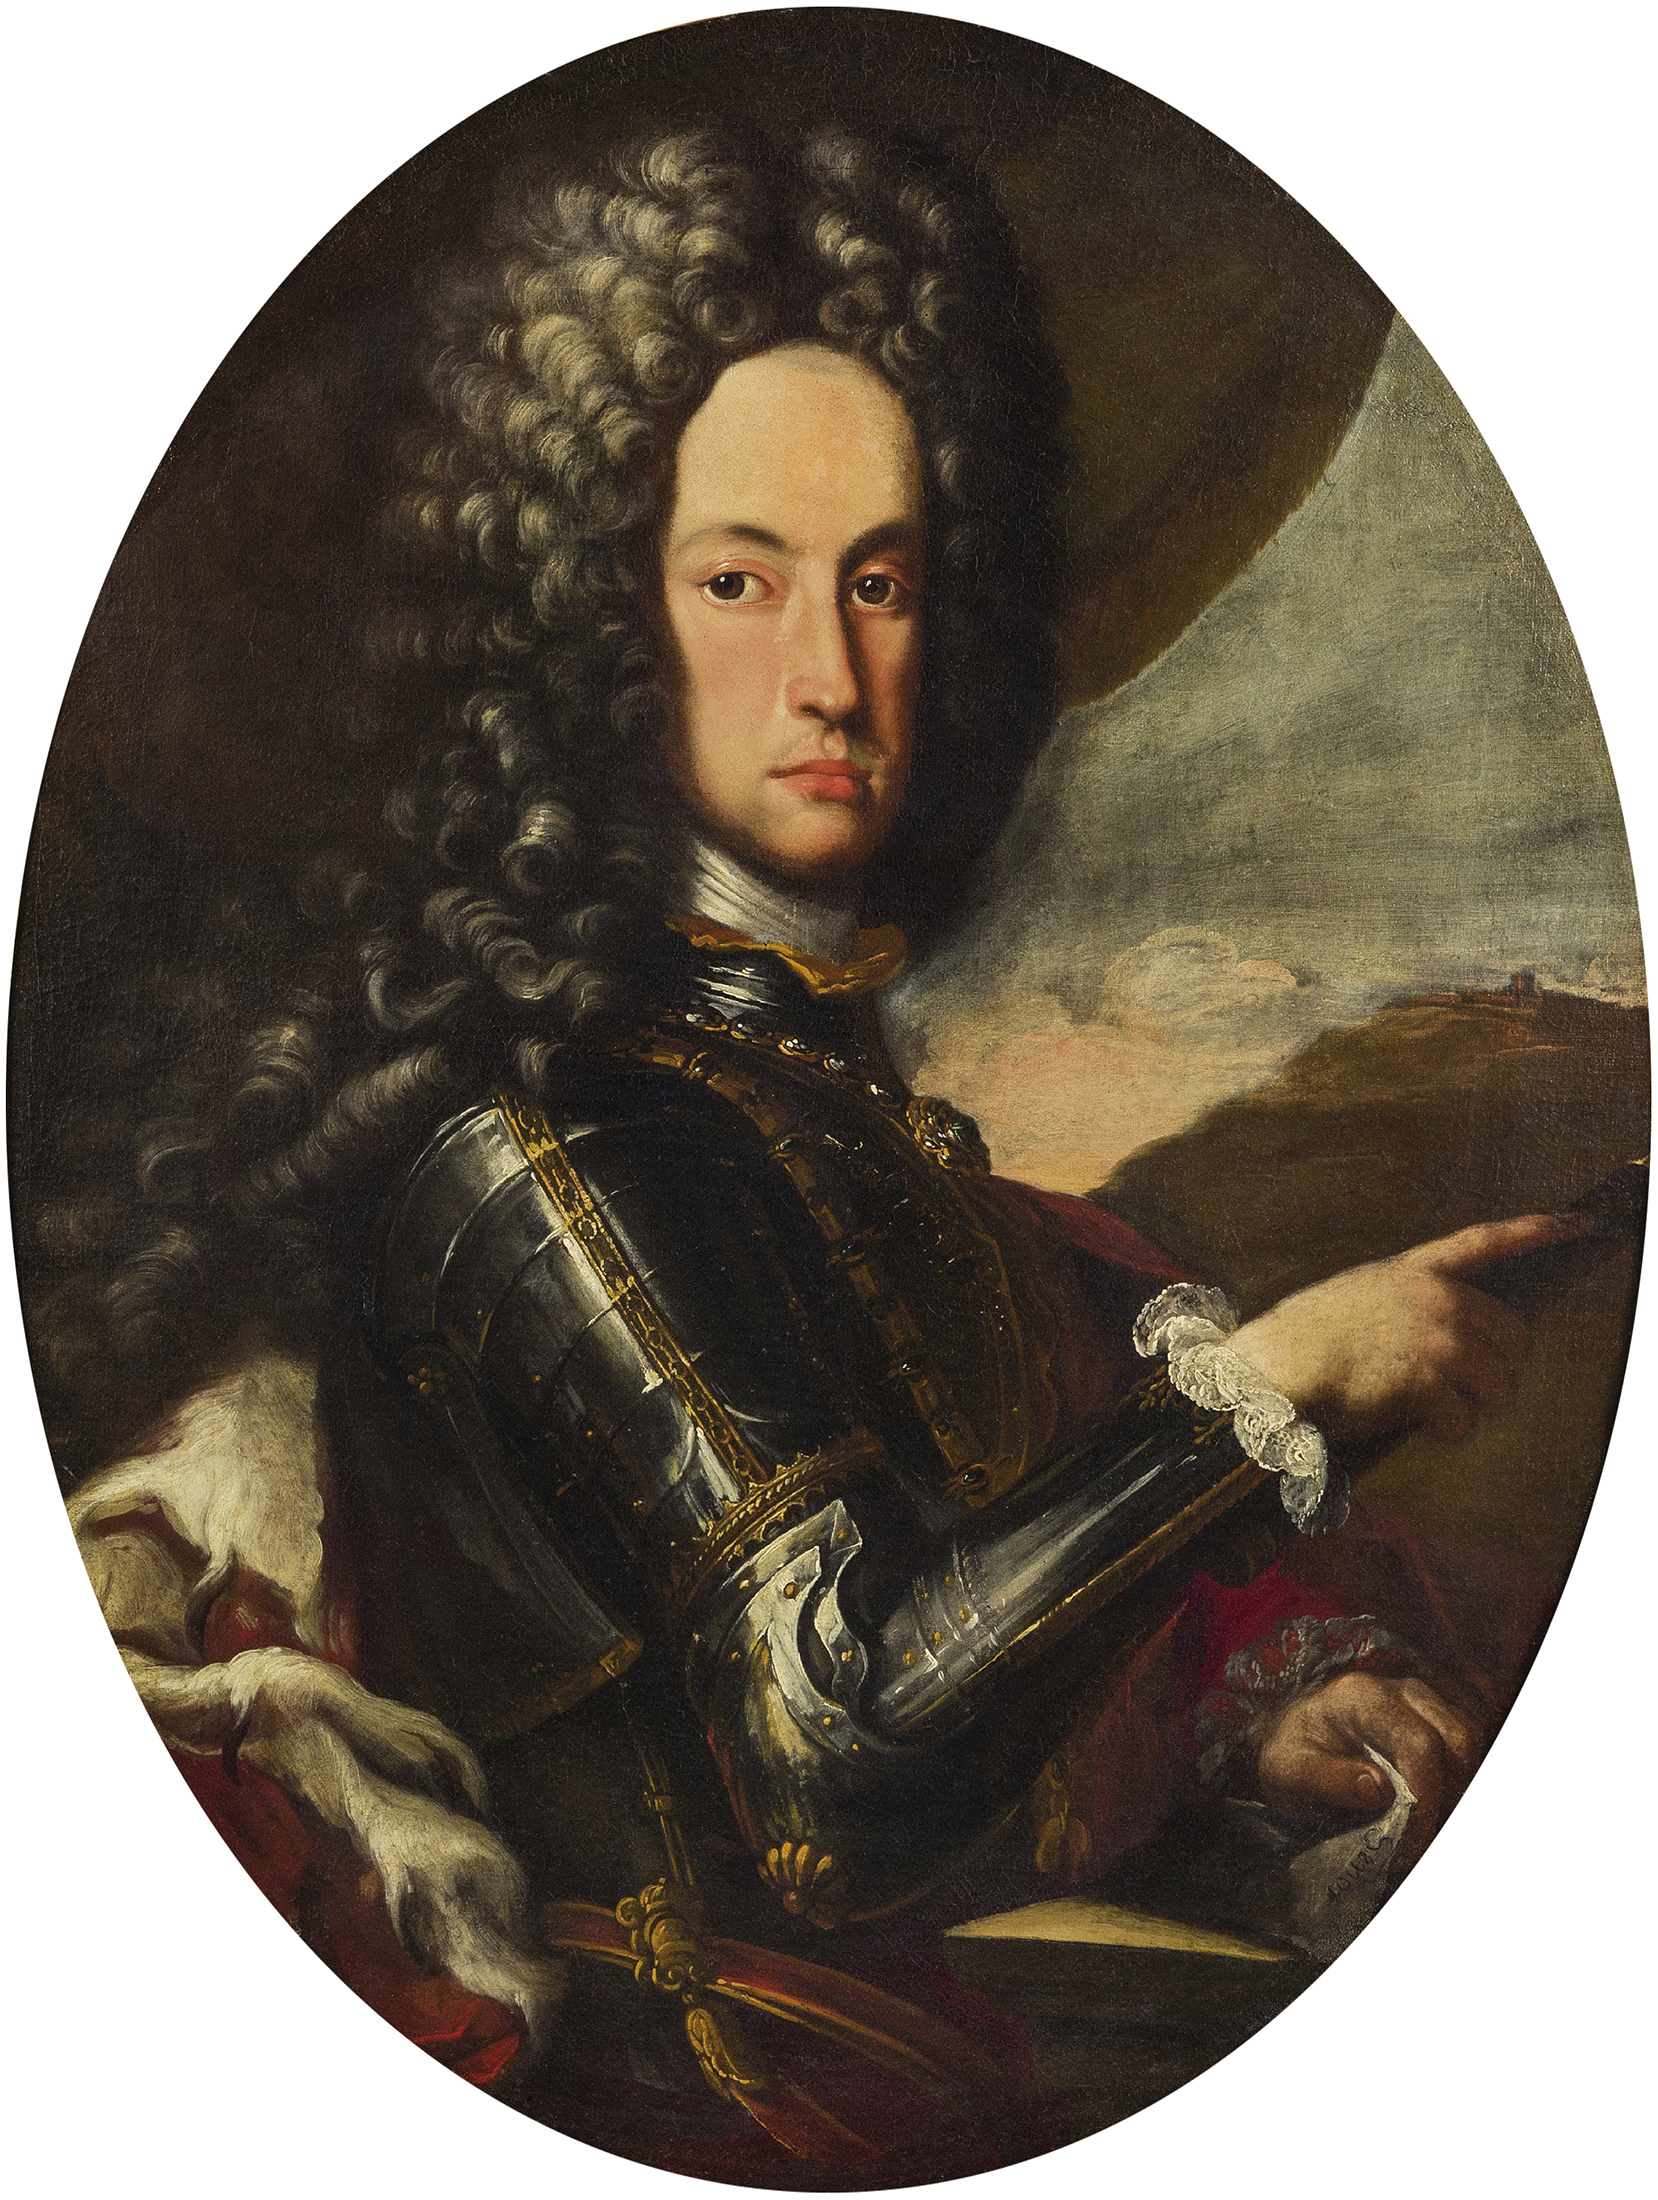 Portrait of Charles VI (1685-1740), Holy Roman Emperor, King of Hungary and Bohemia, Archduke of Austria (1711-1740), Duke of Brabant, Limburg and Milan, Count of Flanders and Hainaut (1714-1740); King of Naples (1714-1735), King of Sicily (1720-1734) | Portraits of Kings